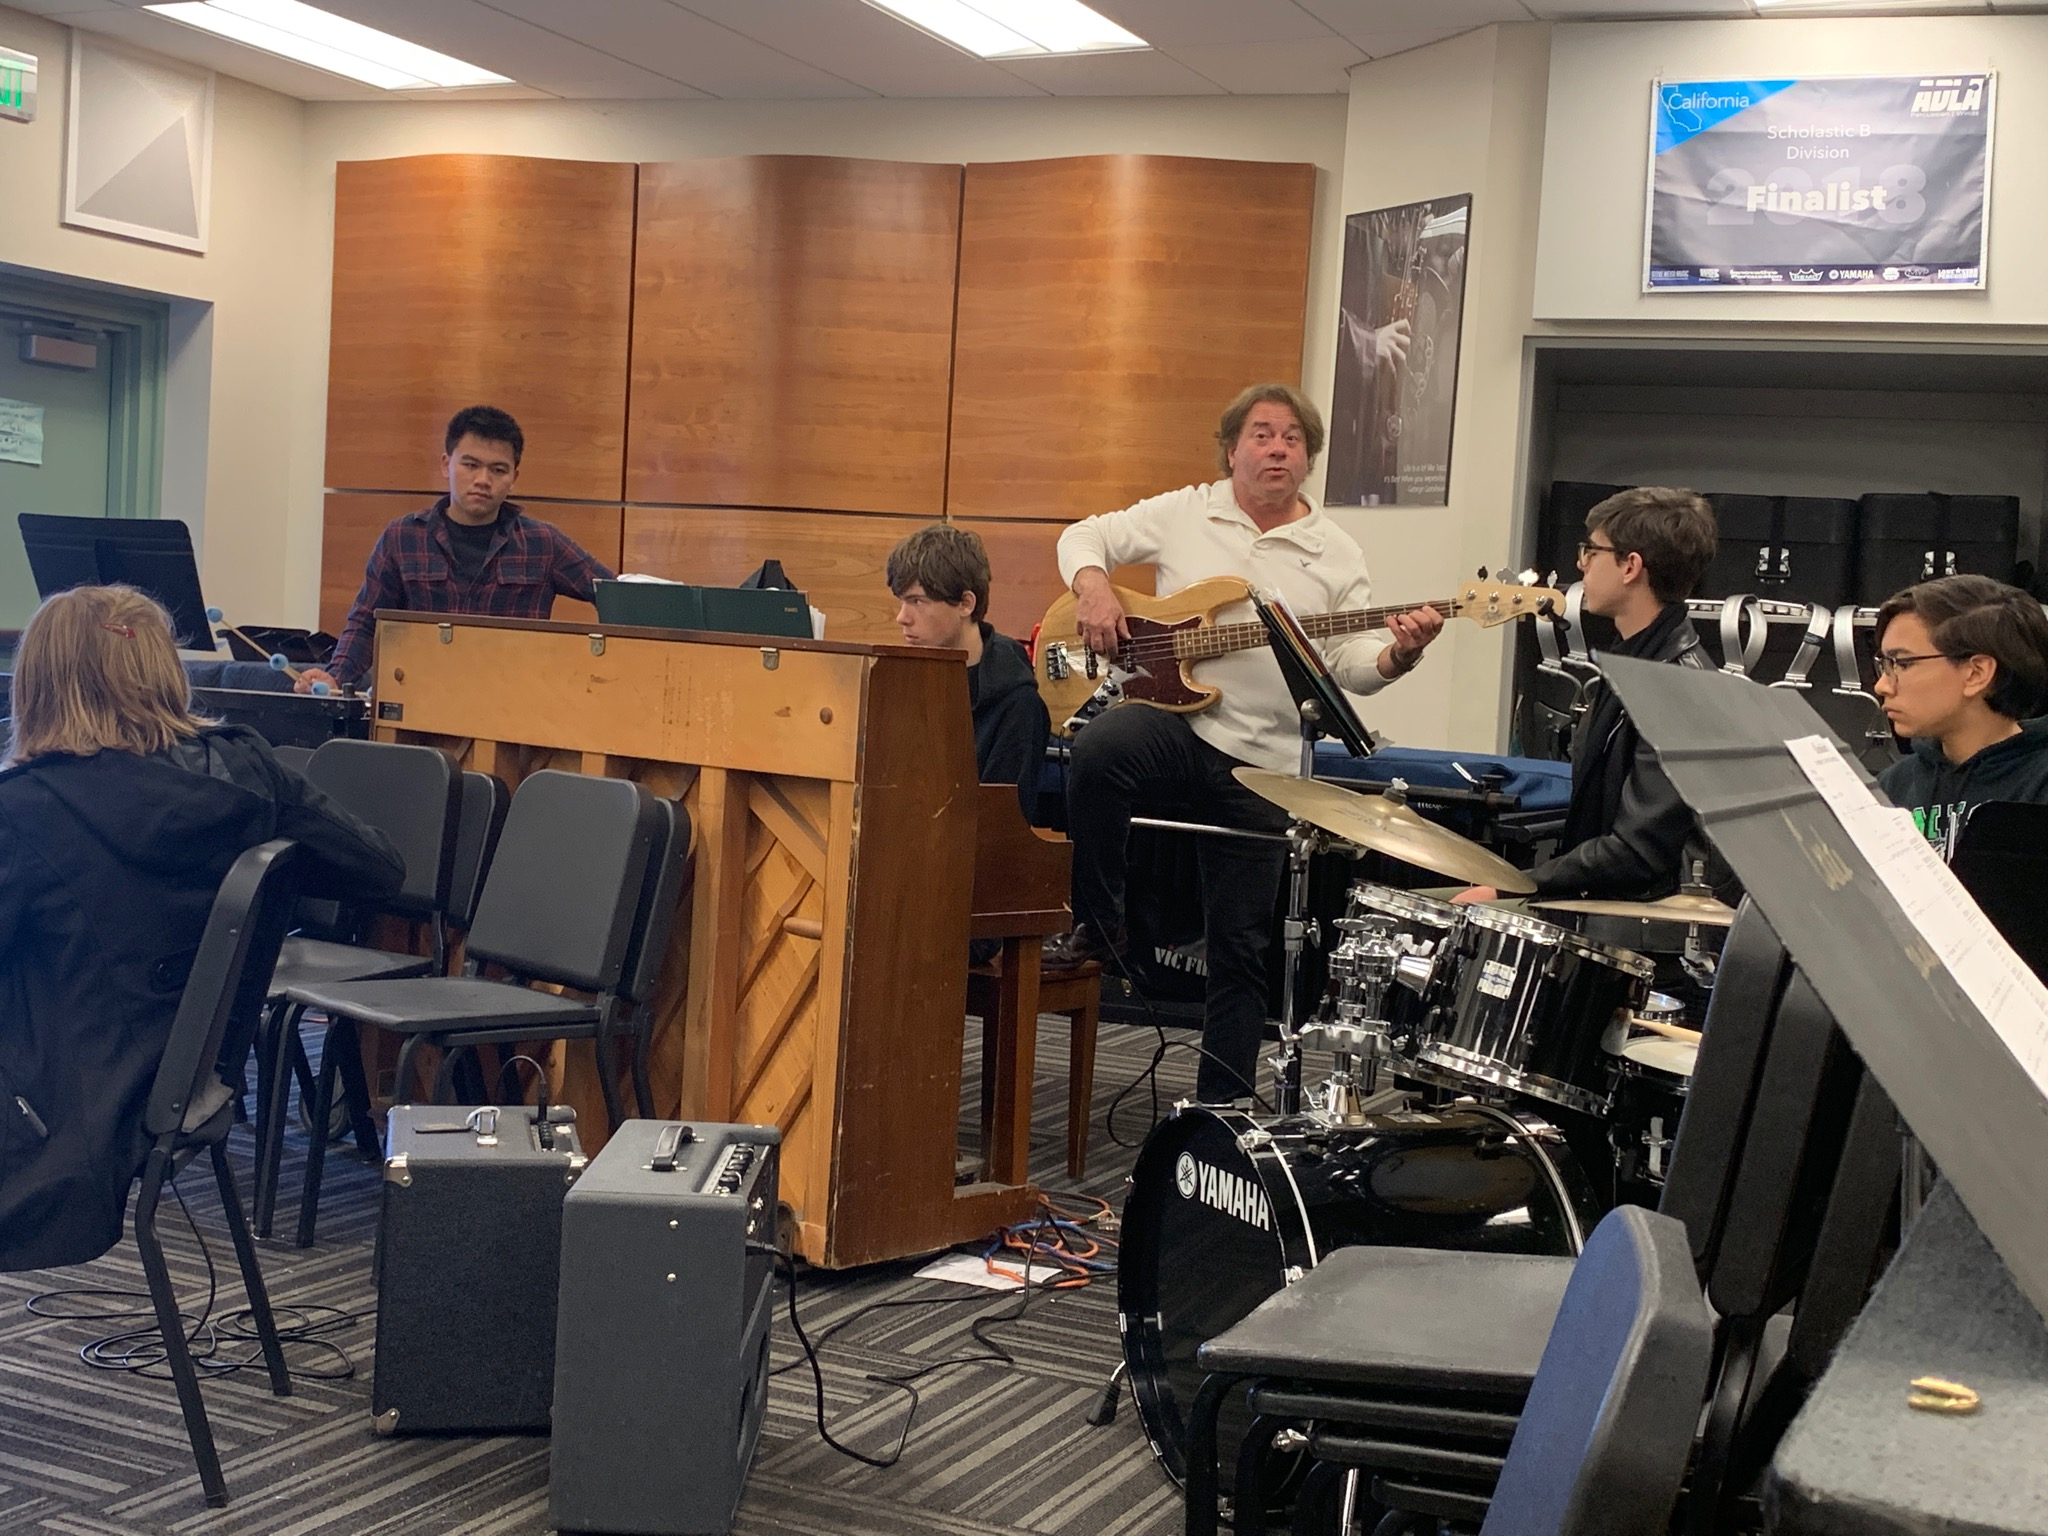 Jazz rhythm section gets pointers from pro, Rick Shaw